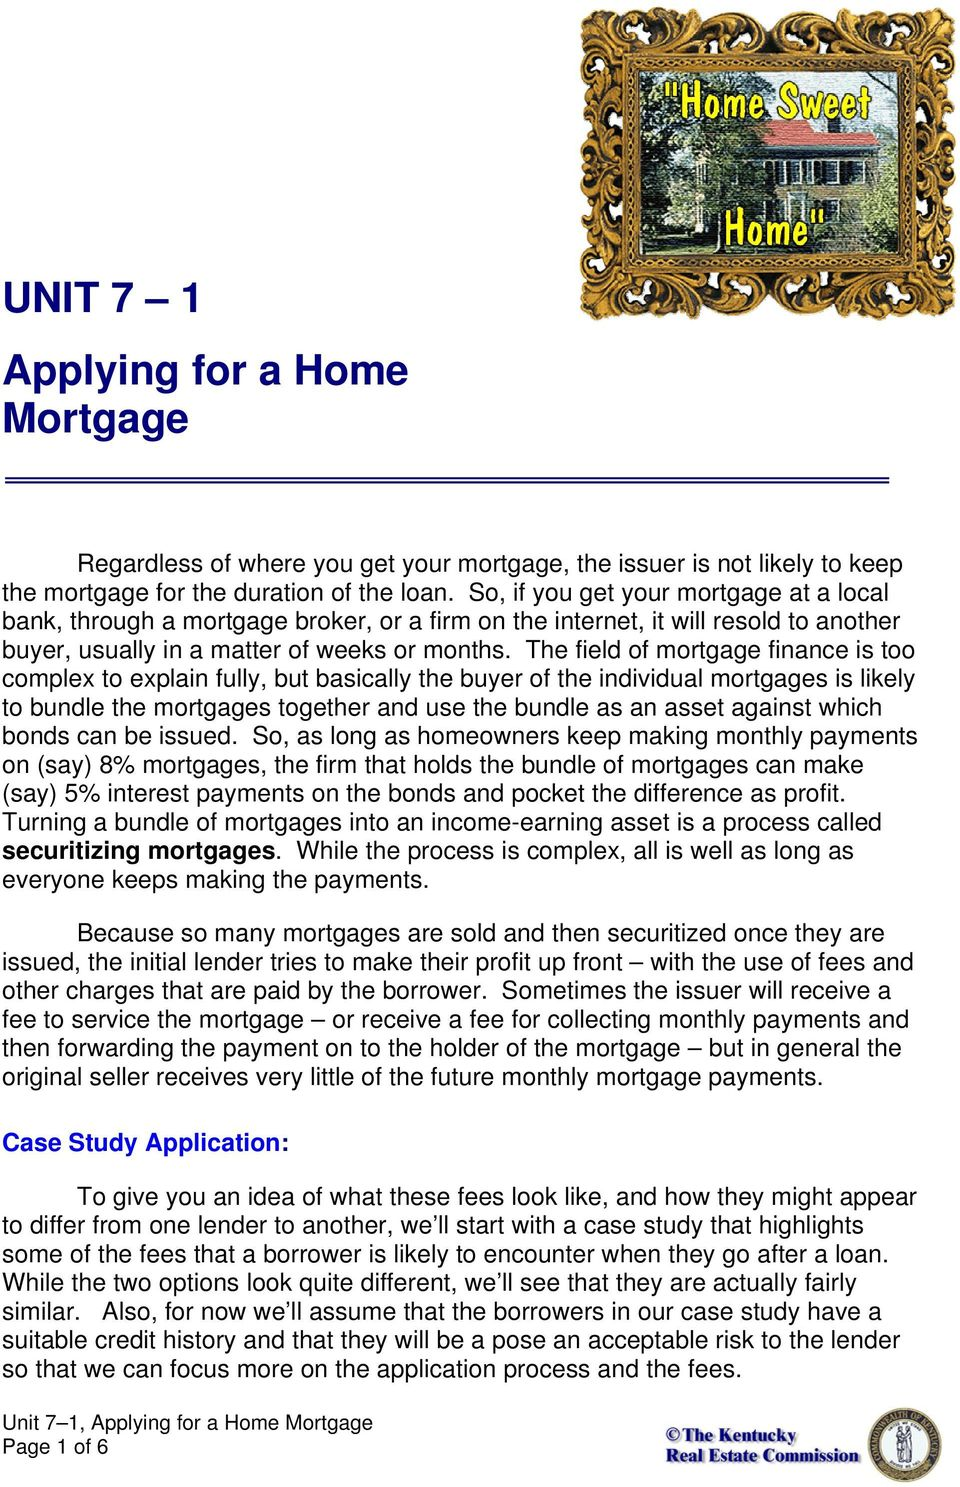 The field of mortgage finance is too complex to explain fully, but basically the buyer of the individual mortgages is likely to bundle the mortgages together and use the bundle as an asset against